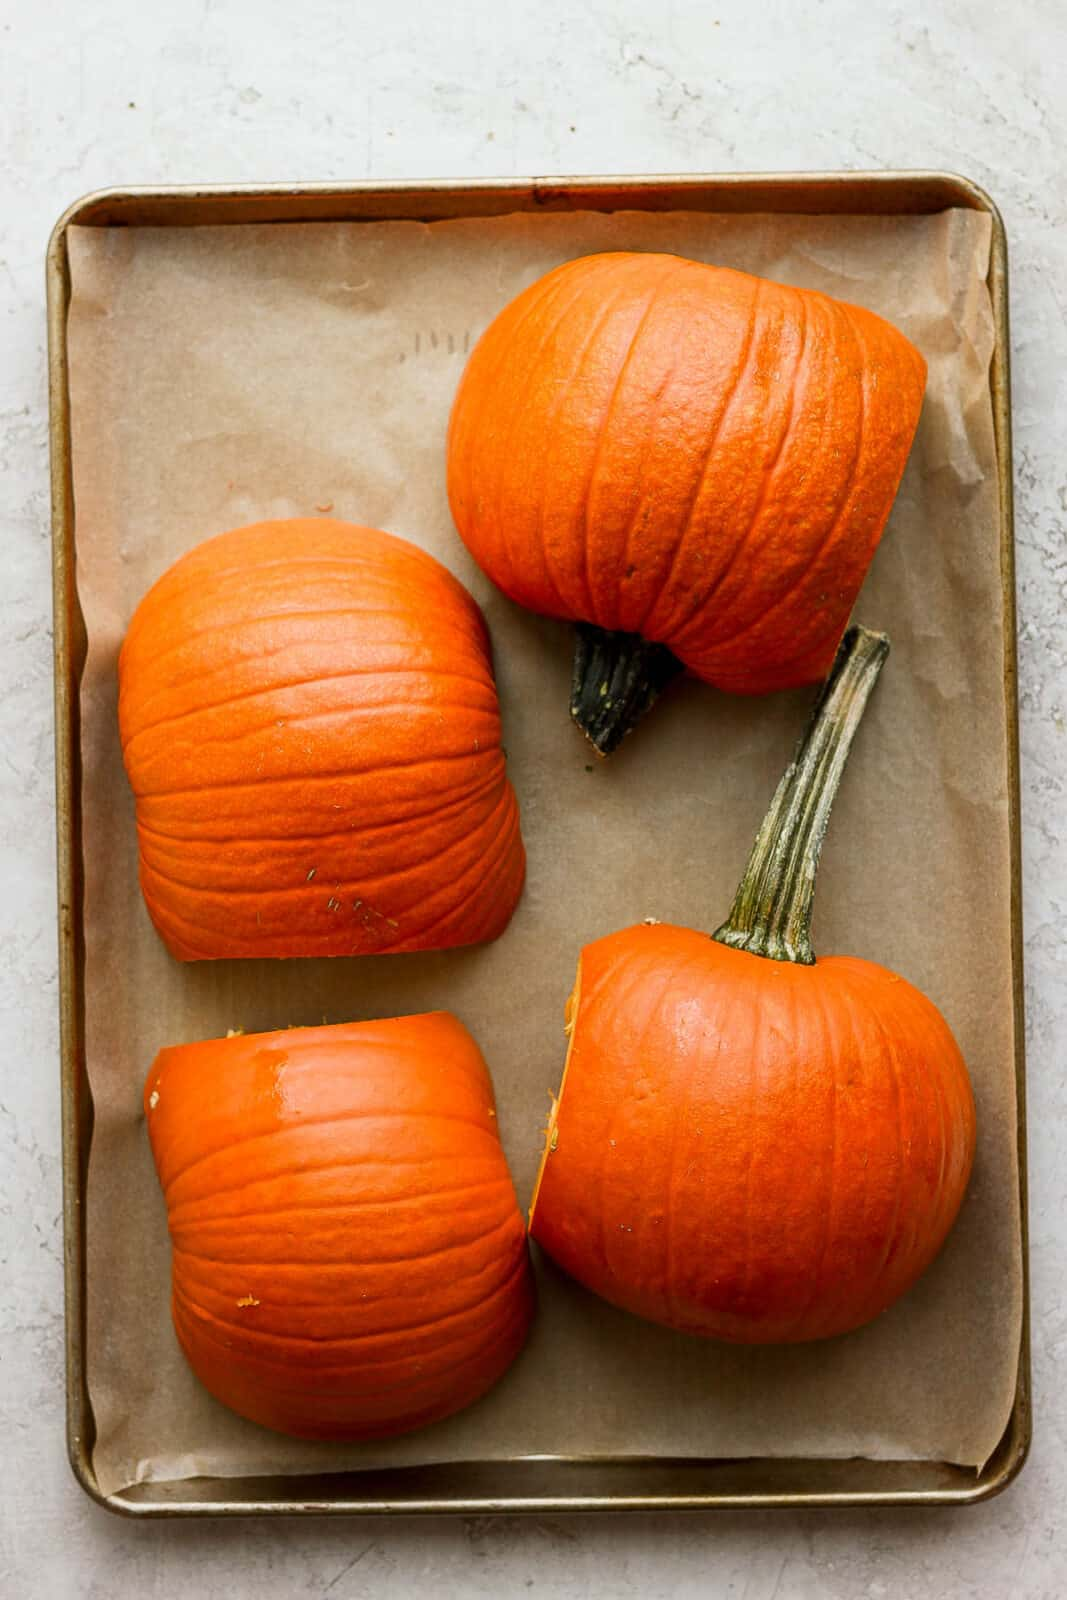 Pumpkin halves placed cut-side down on a parchment-lined baking sheet.